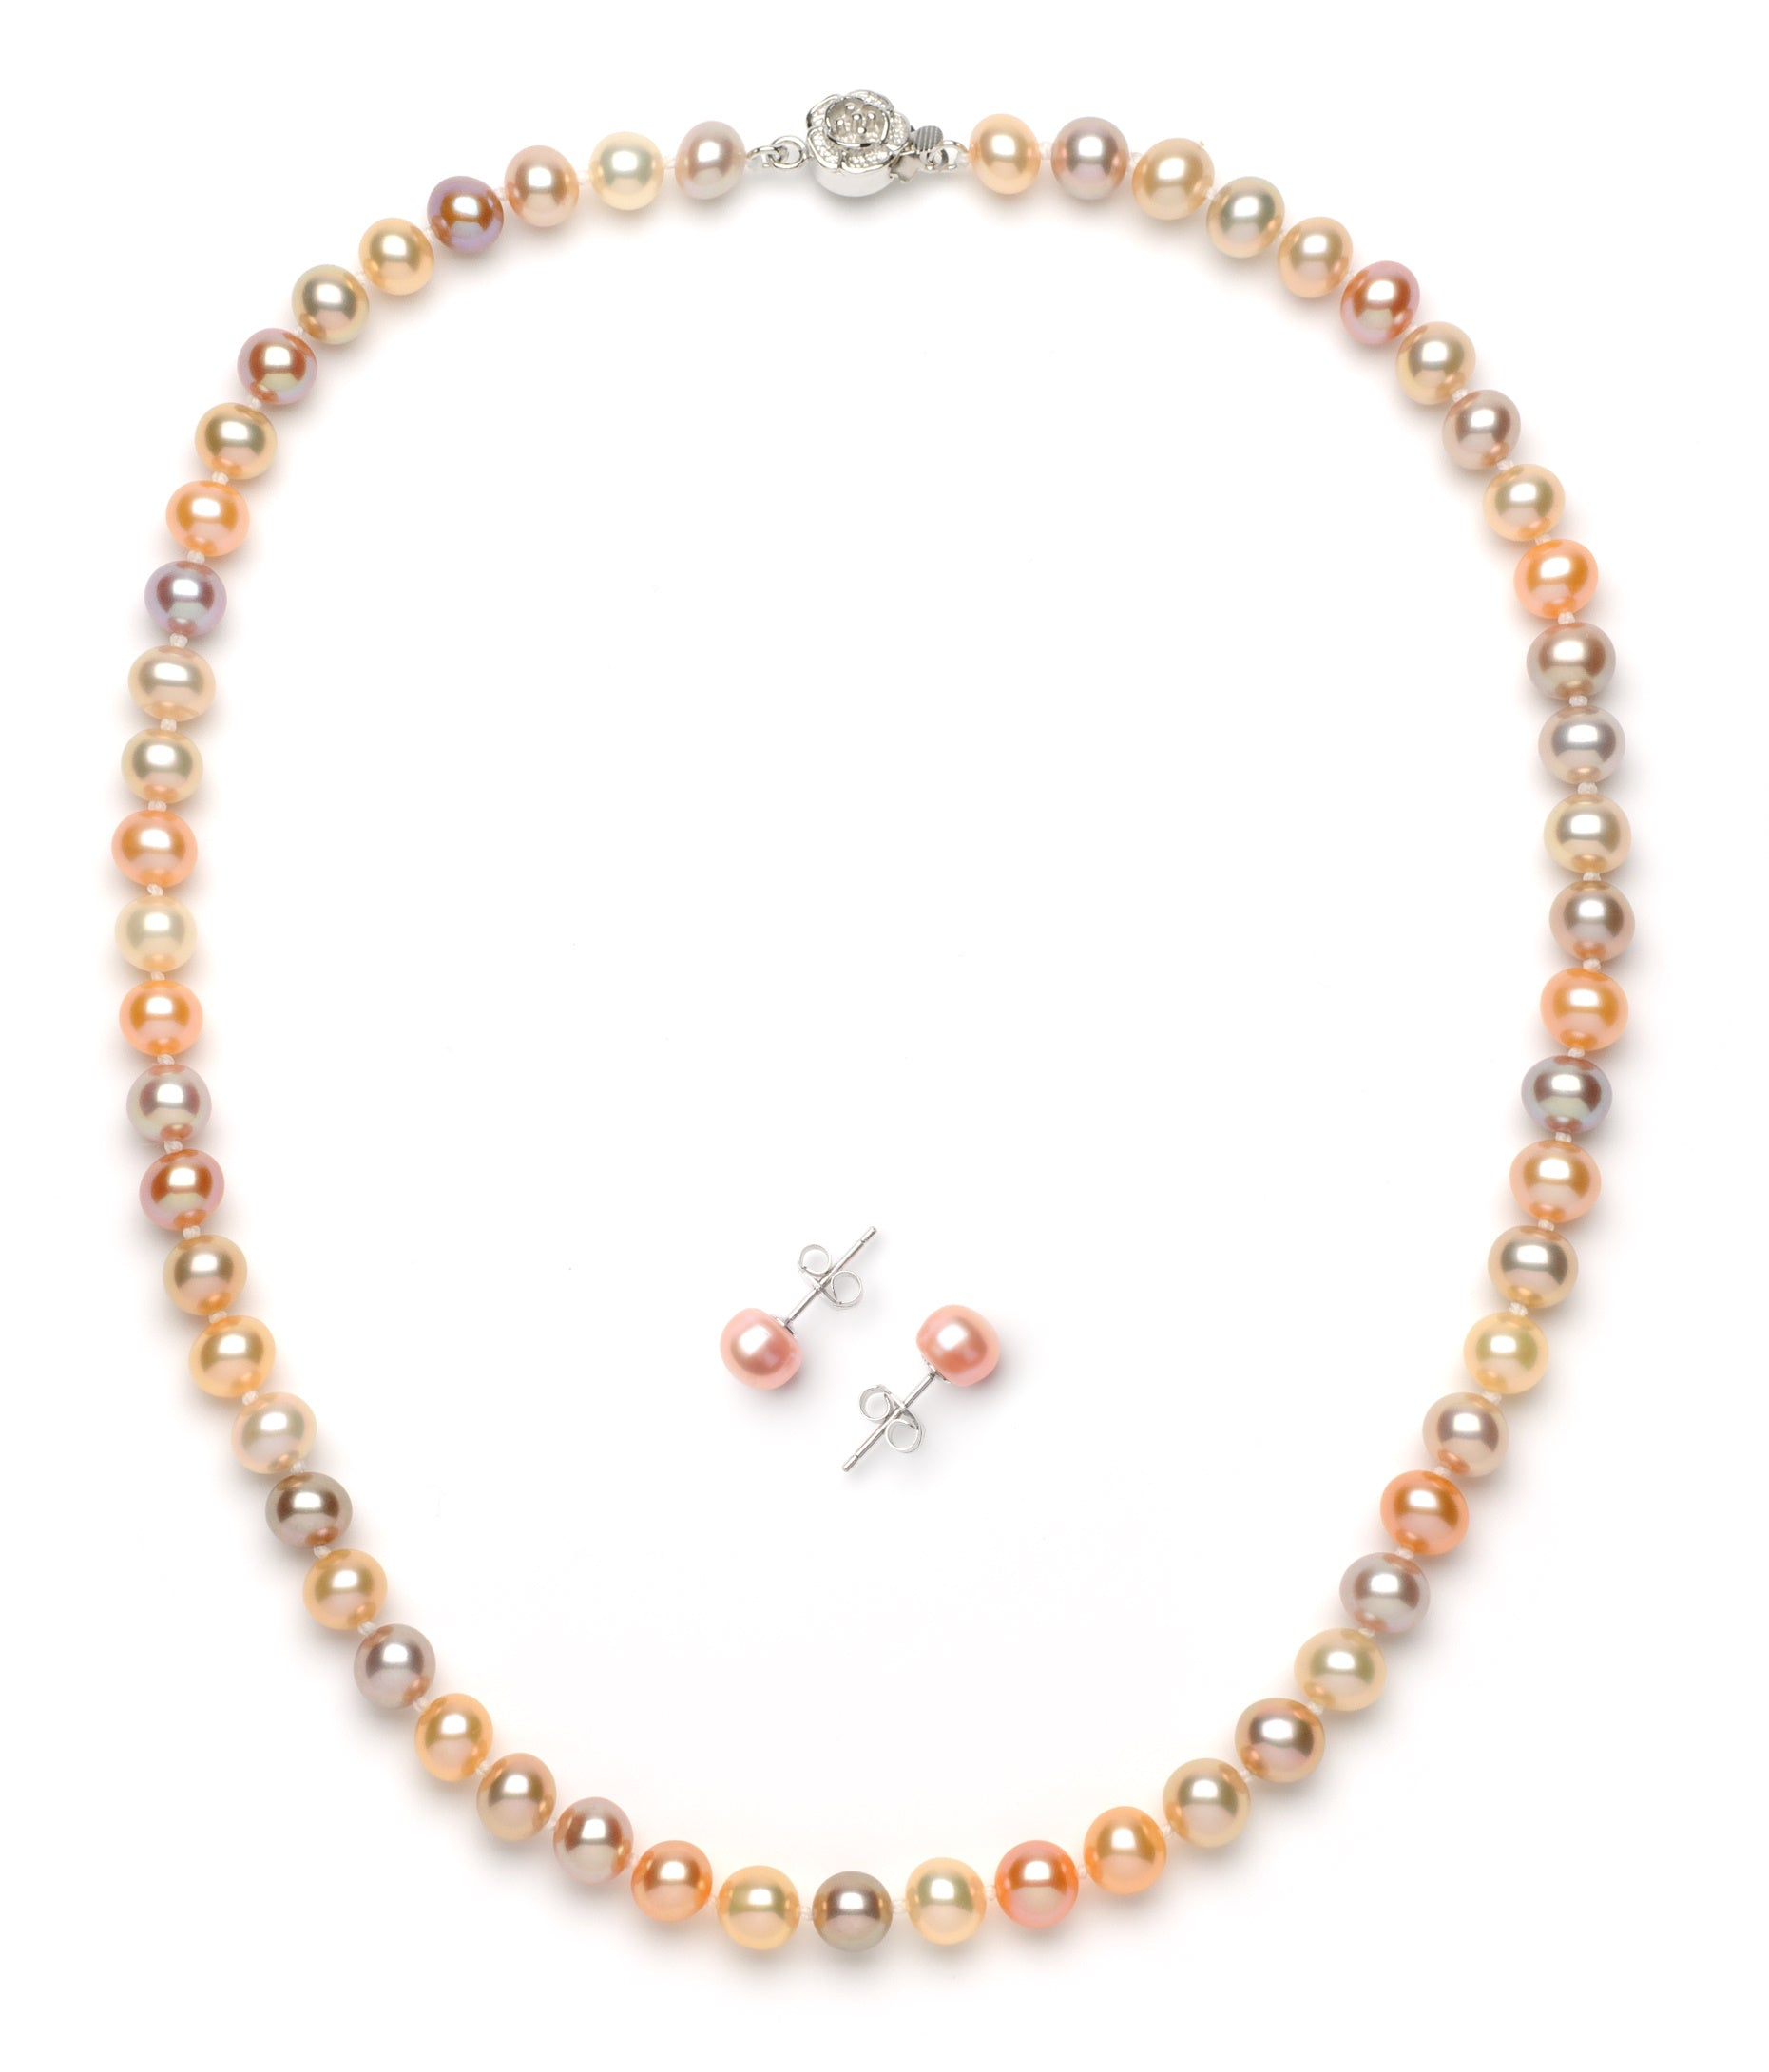 Necklace/Earrings Set 6.0-7.0 mm Multi-color Freshwater Pearls